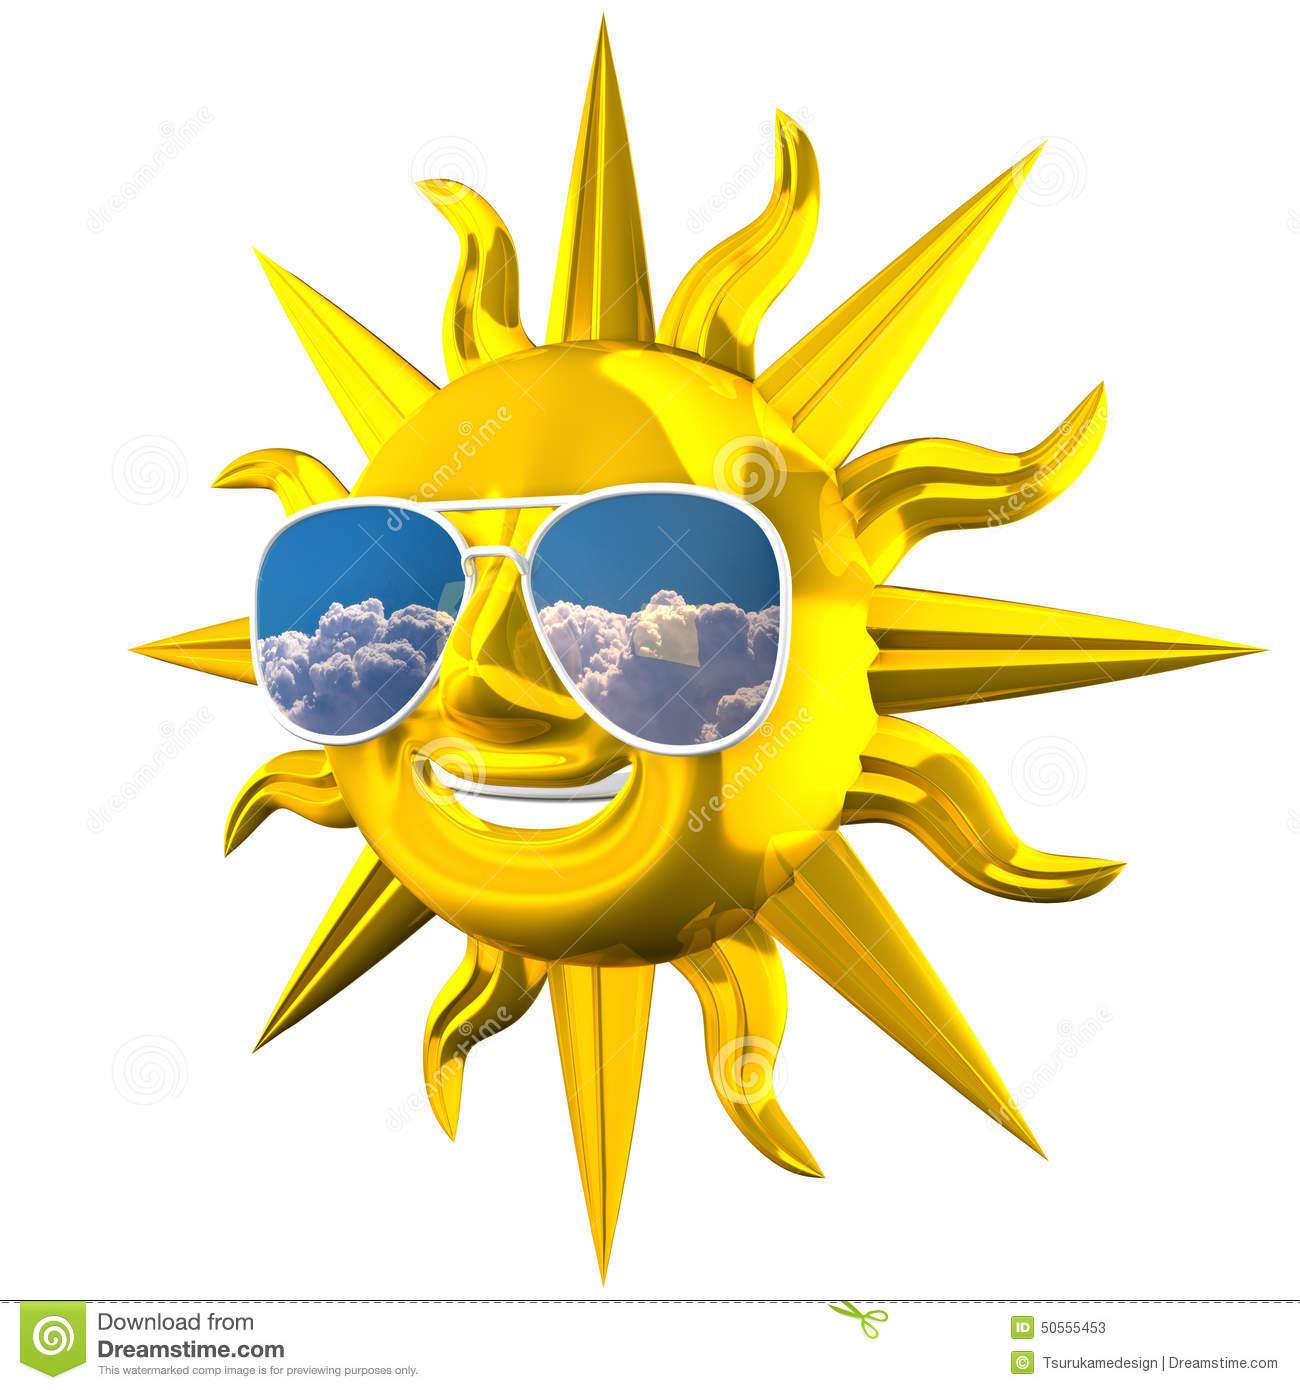 Smiling sun with sunglasses - Golden Smiling Sun With Sunglasses